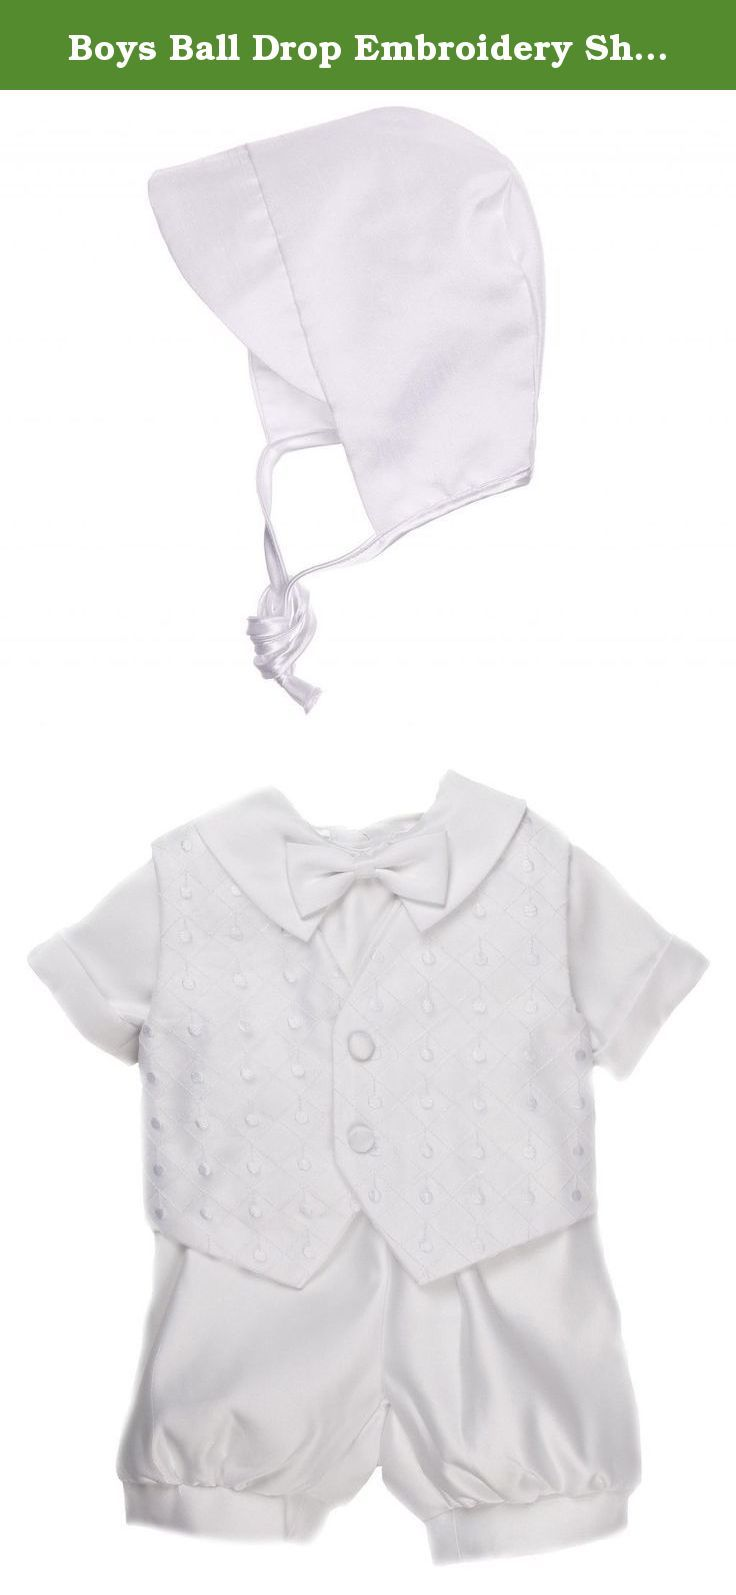 Boys Ball Drop Embroidery Short Set and Hat 12M. A classic. Checkered detail on the vest with crisp white knickers to boot! This set will easily translate as a favorite in the family as one child is christened and inspiring others to follow suit. Easy to clean with easy to dress/undress button features, you'll be glad you invested in a sure-buy. The shorts feature an elastic waist, so your child can fit, no matter his belly size. The bow is attached, so you don't have to work so hard.